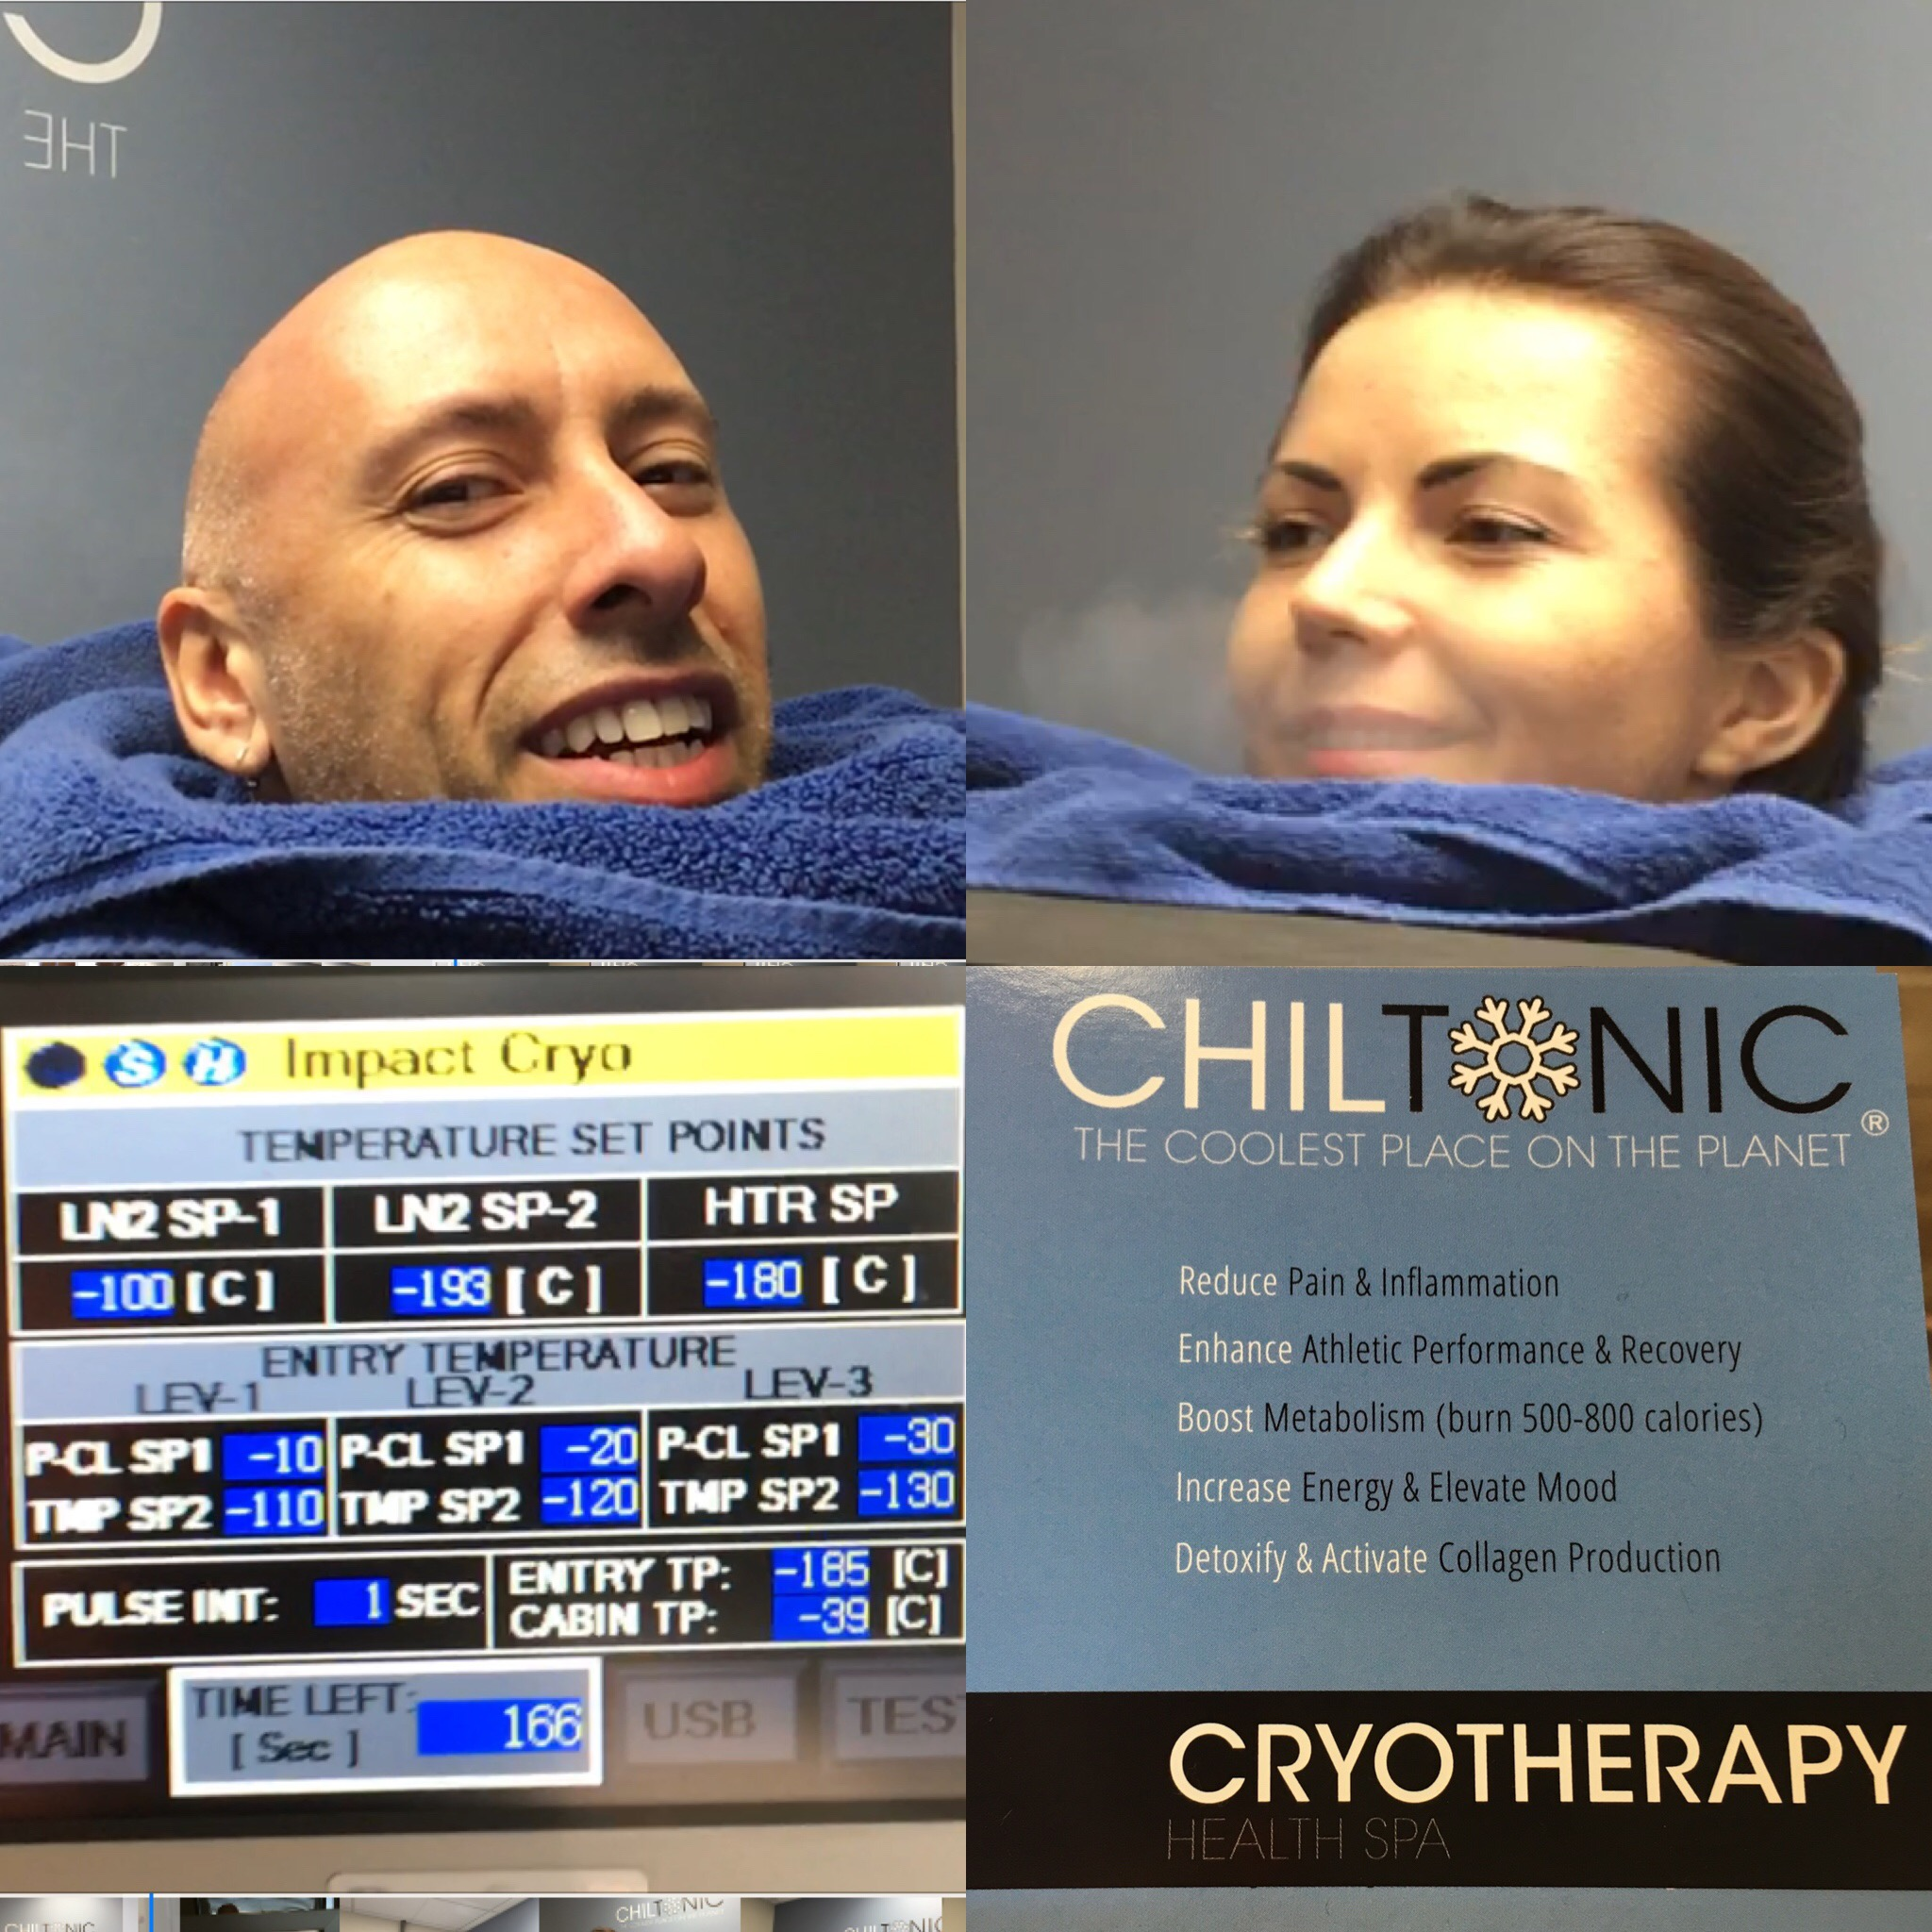 The 7 Powerful Cryotherapy Benefits You Need | BeWellBuzz